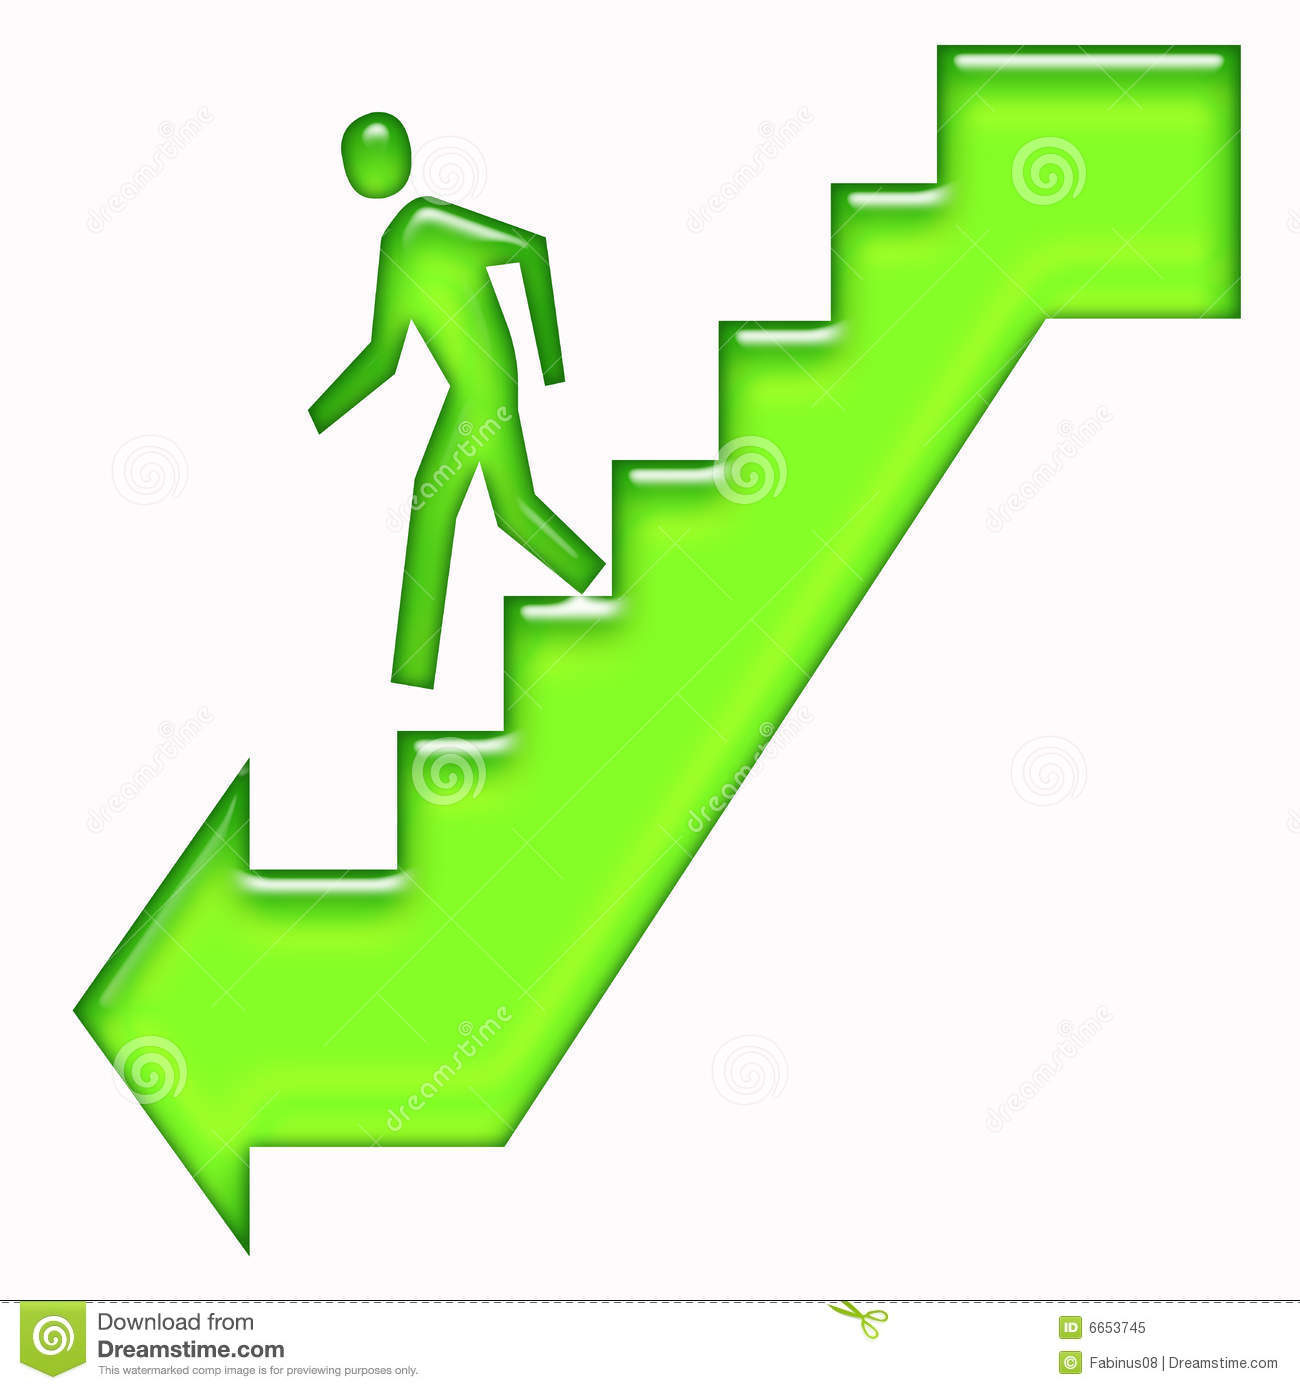 Of Person Walking Down Stairs Sign With Directional Arrow Clipart